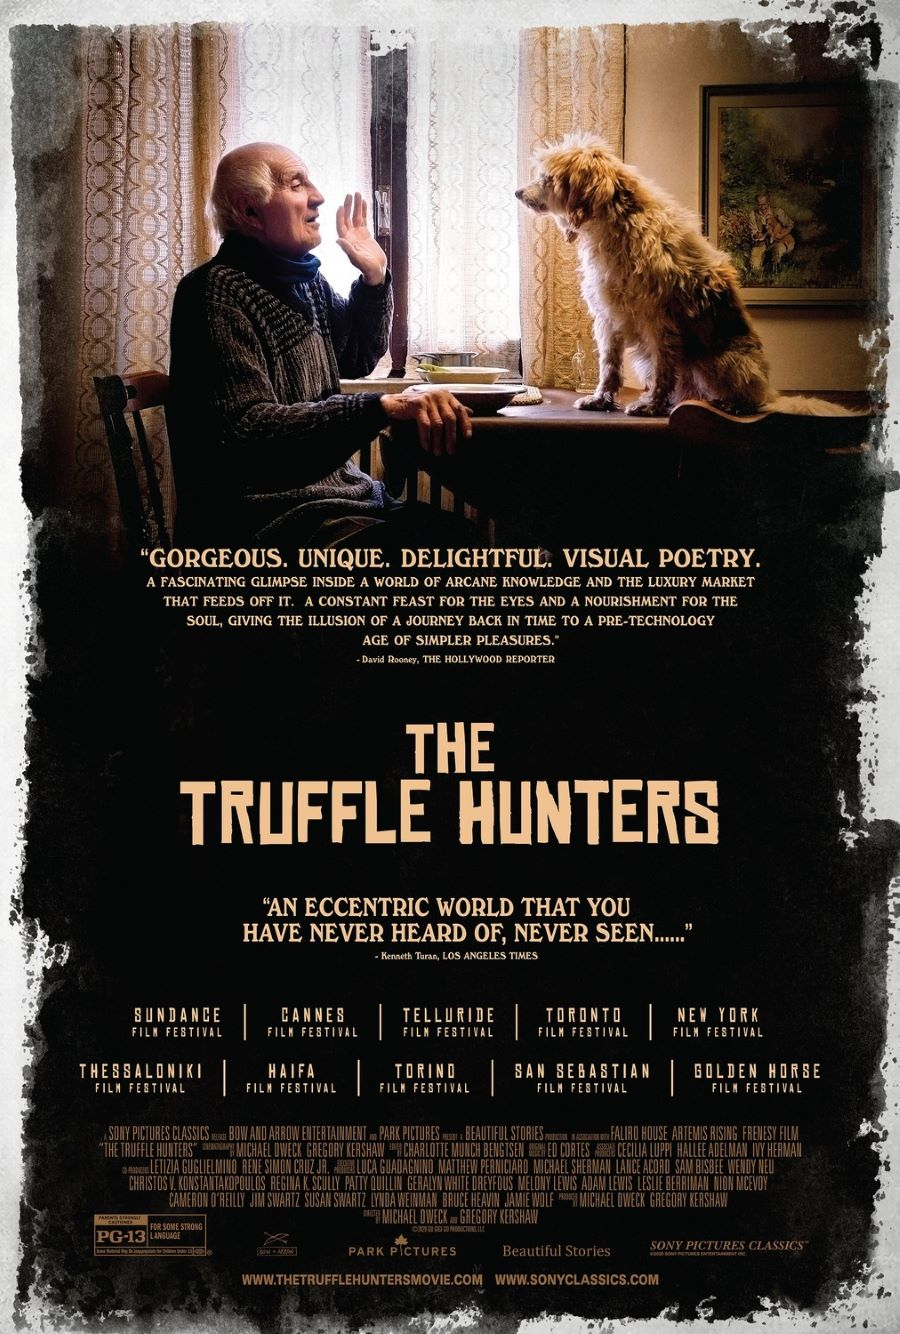 The Truffle Hunters poster